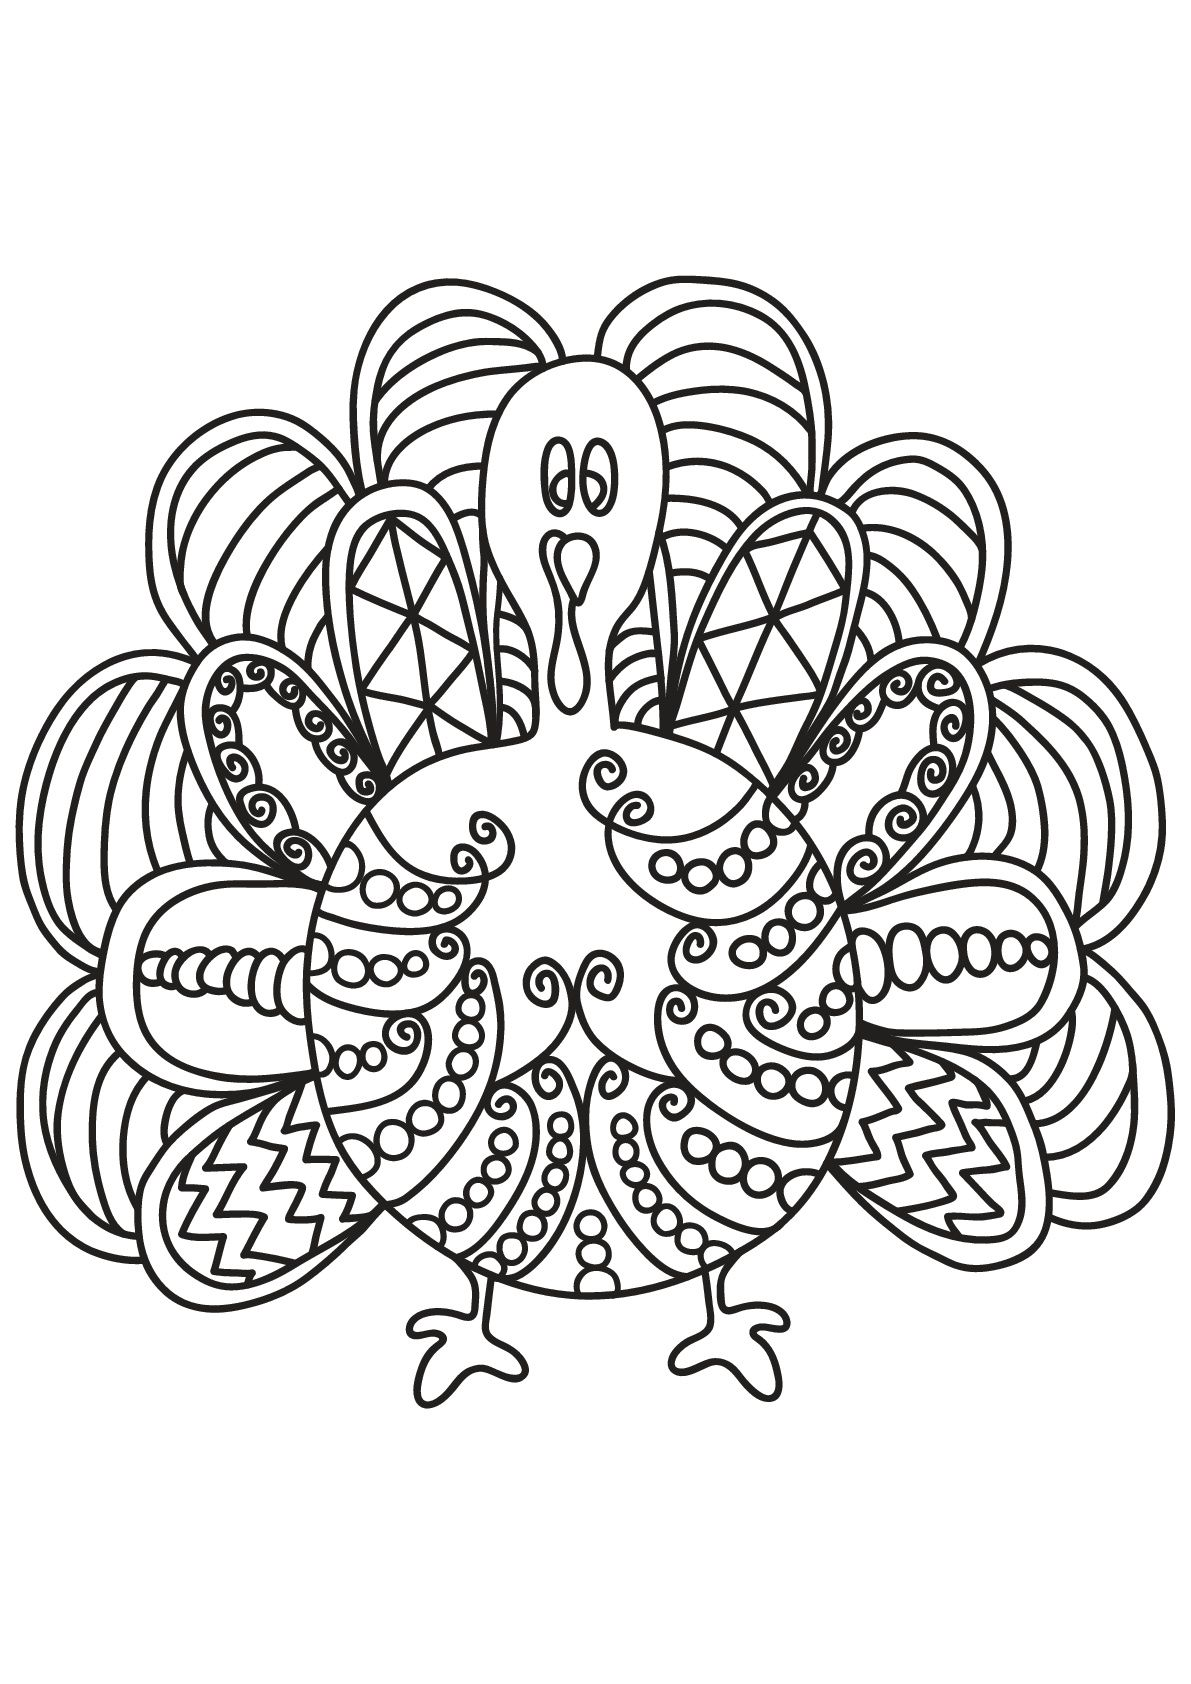 Free book turkey Birds Coloring Pages for Adults Just